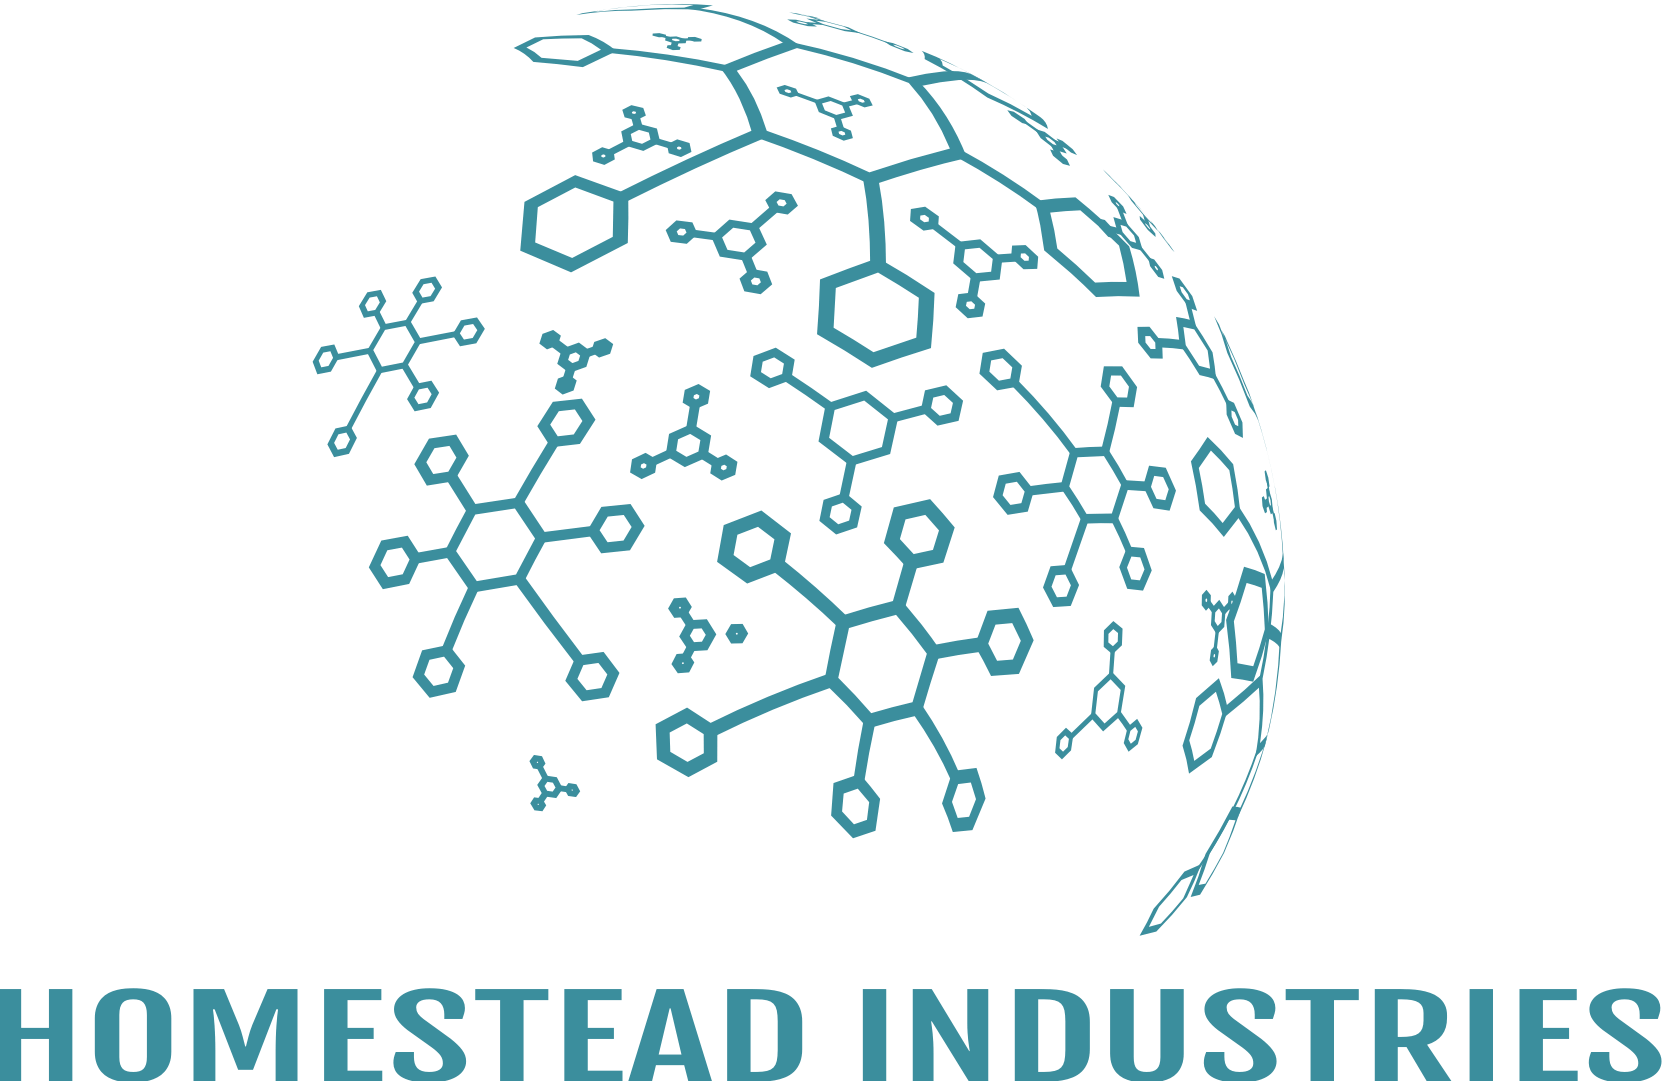 Homestead Industries